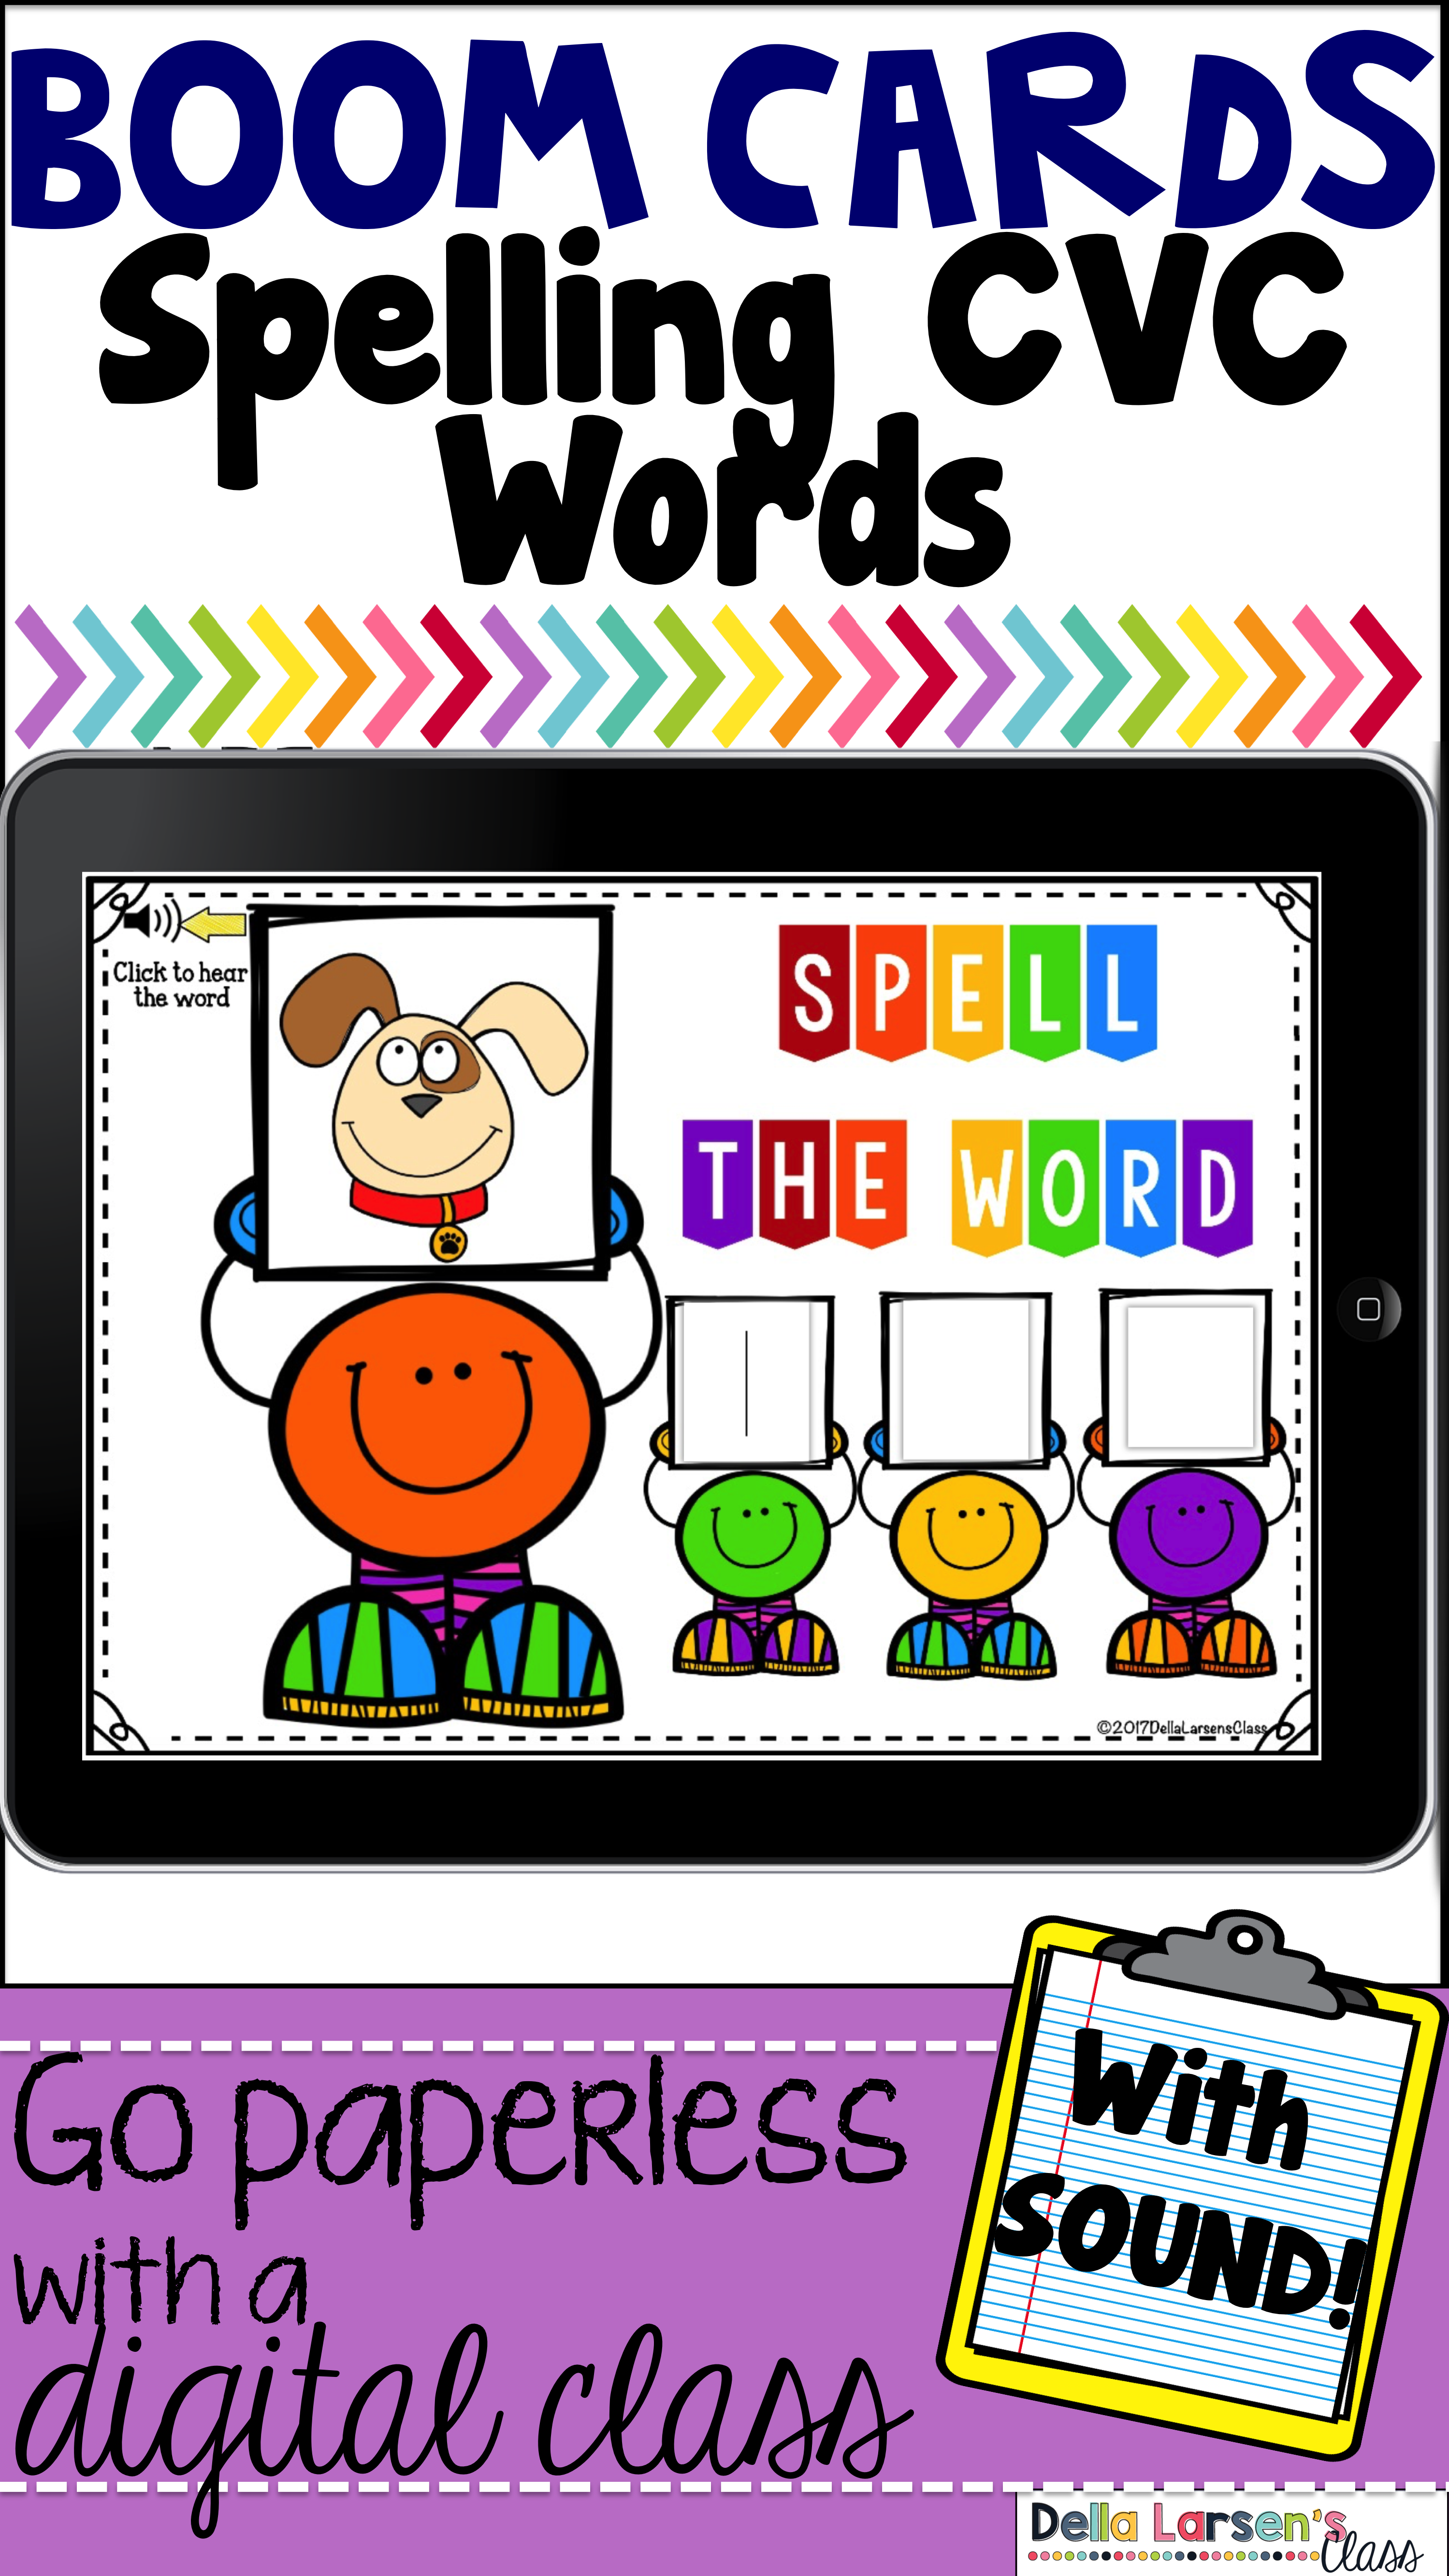 Boom Cards - Spelling CVC Words | Best ideas for